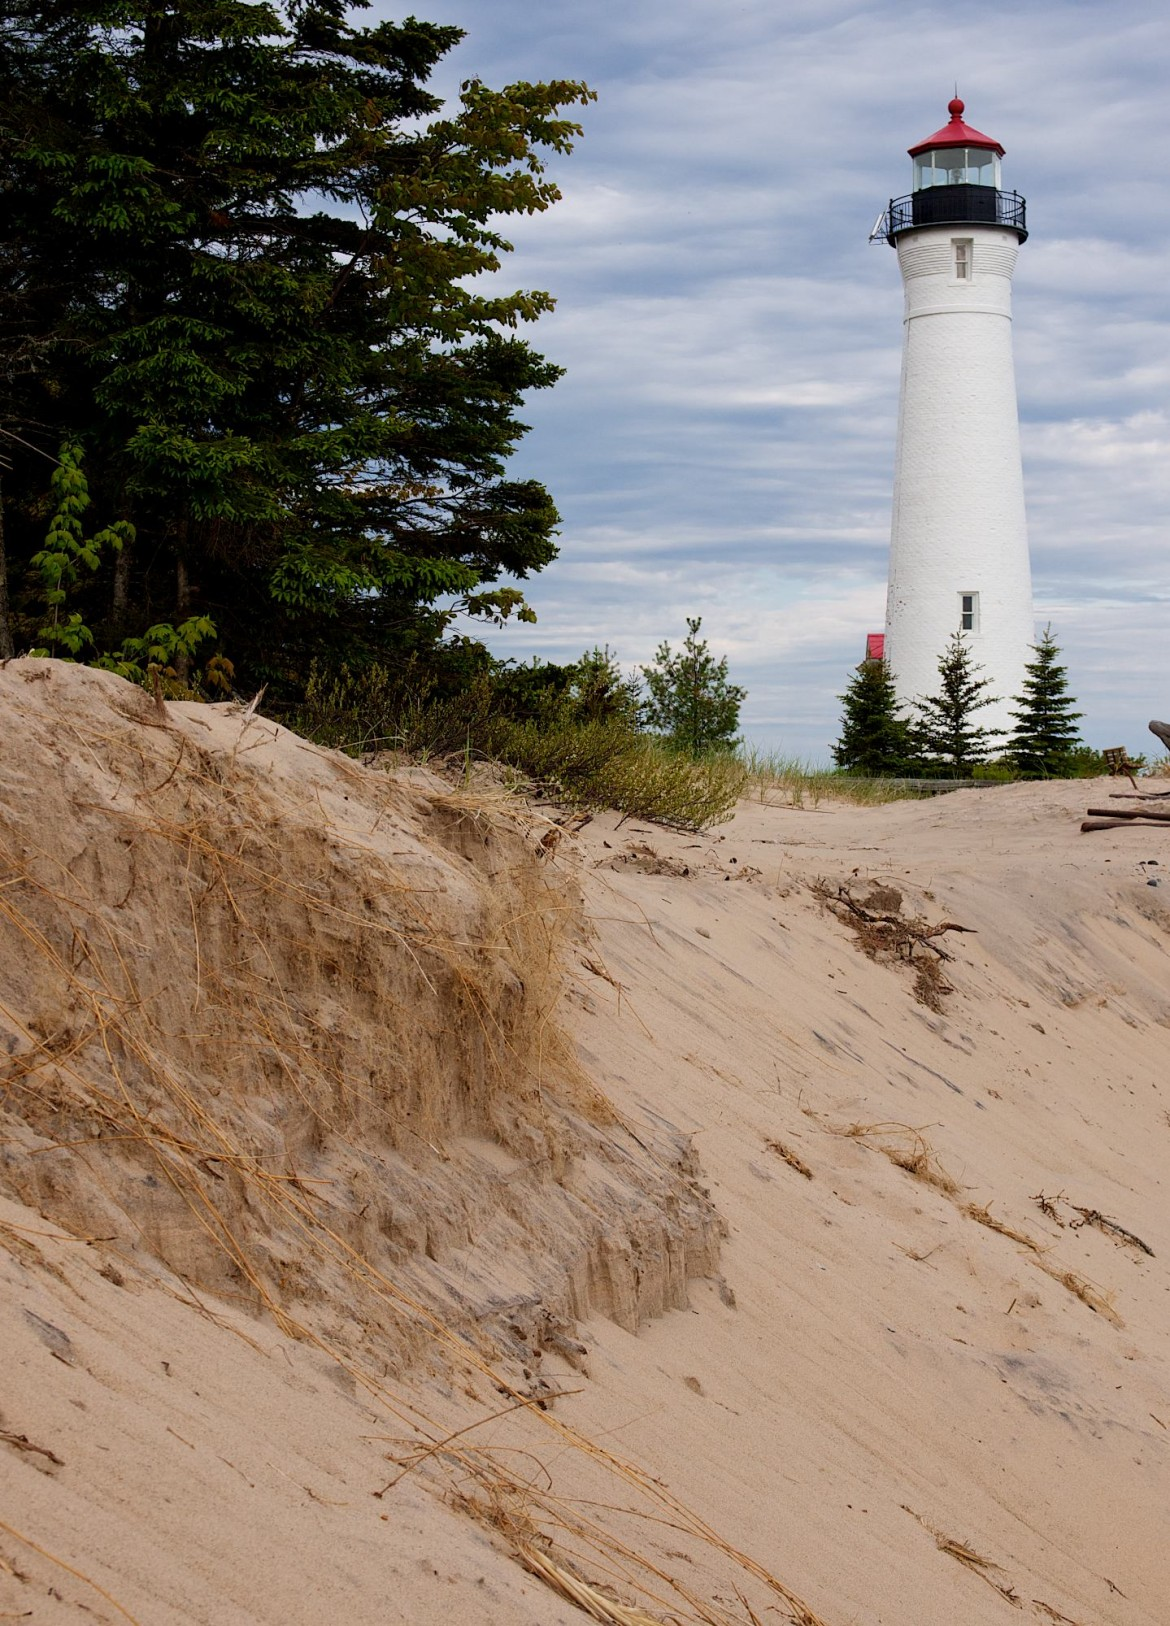 Crisp Point lighthouse on Lake Superior. Image: David Marvin